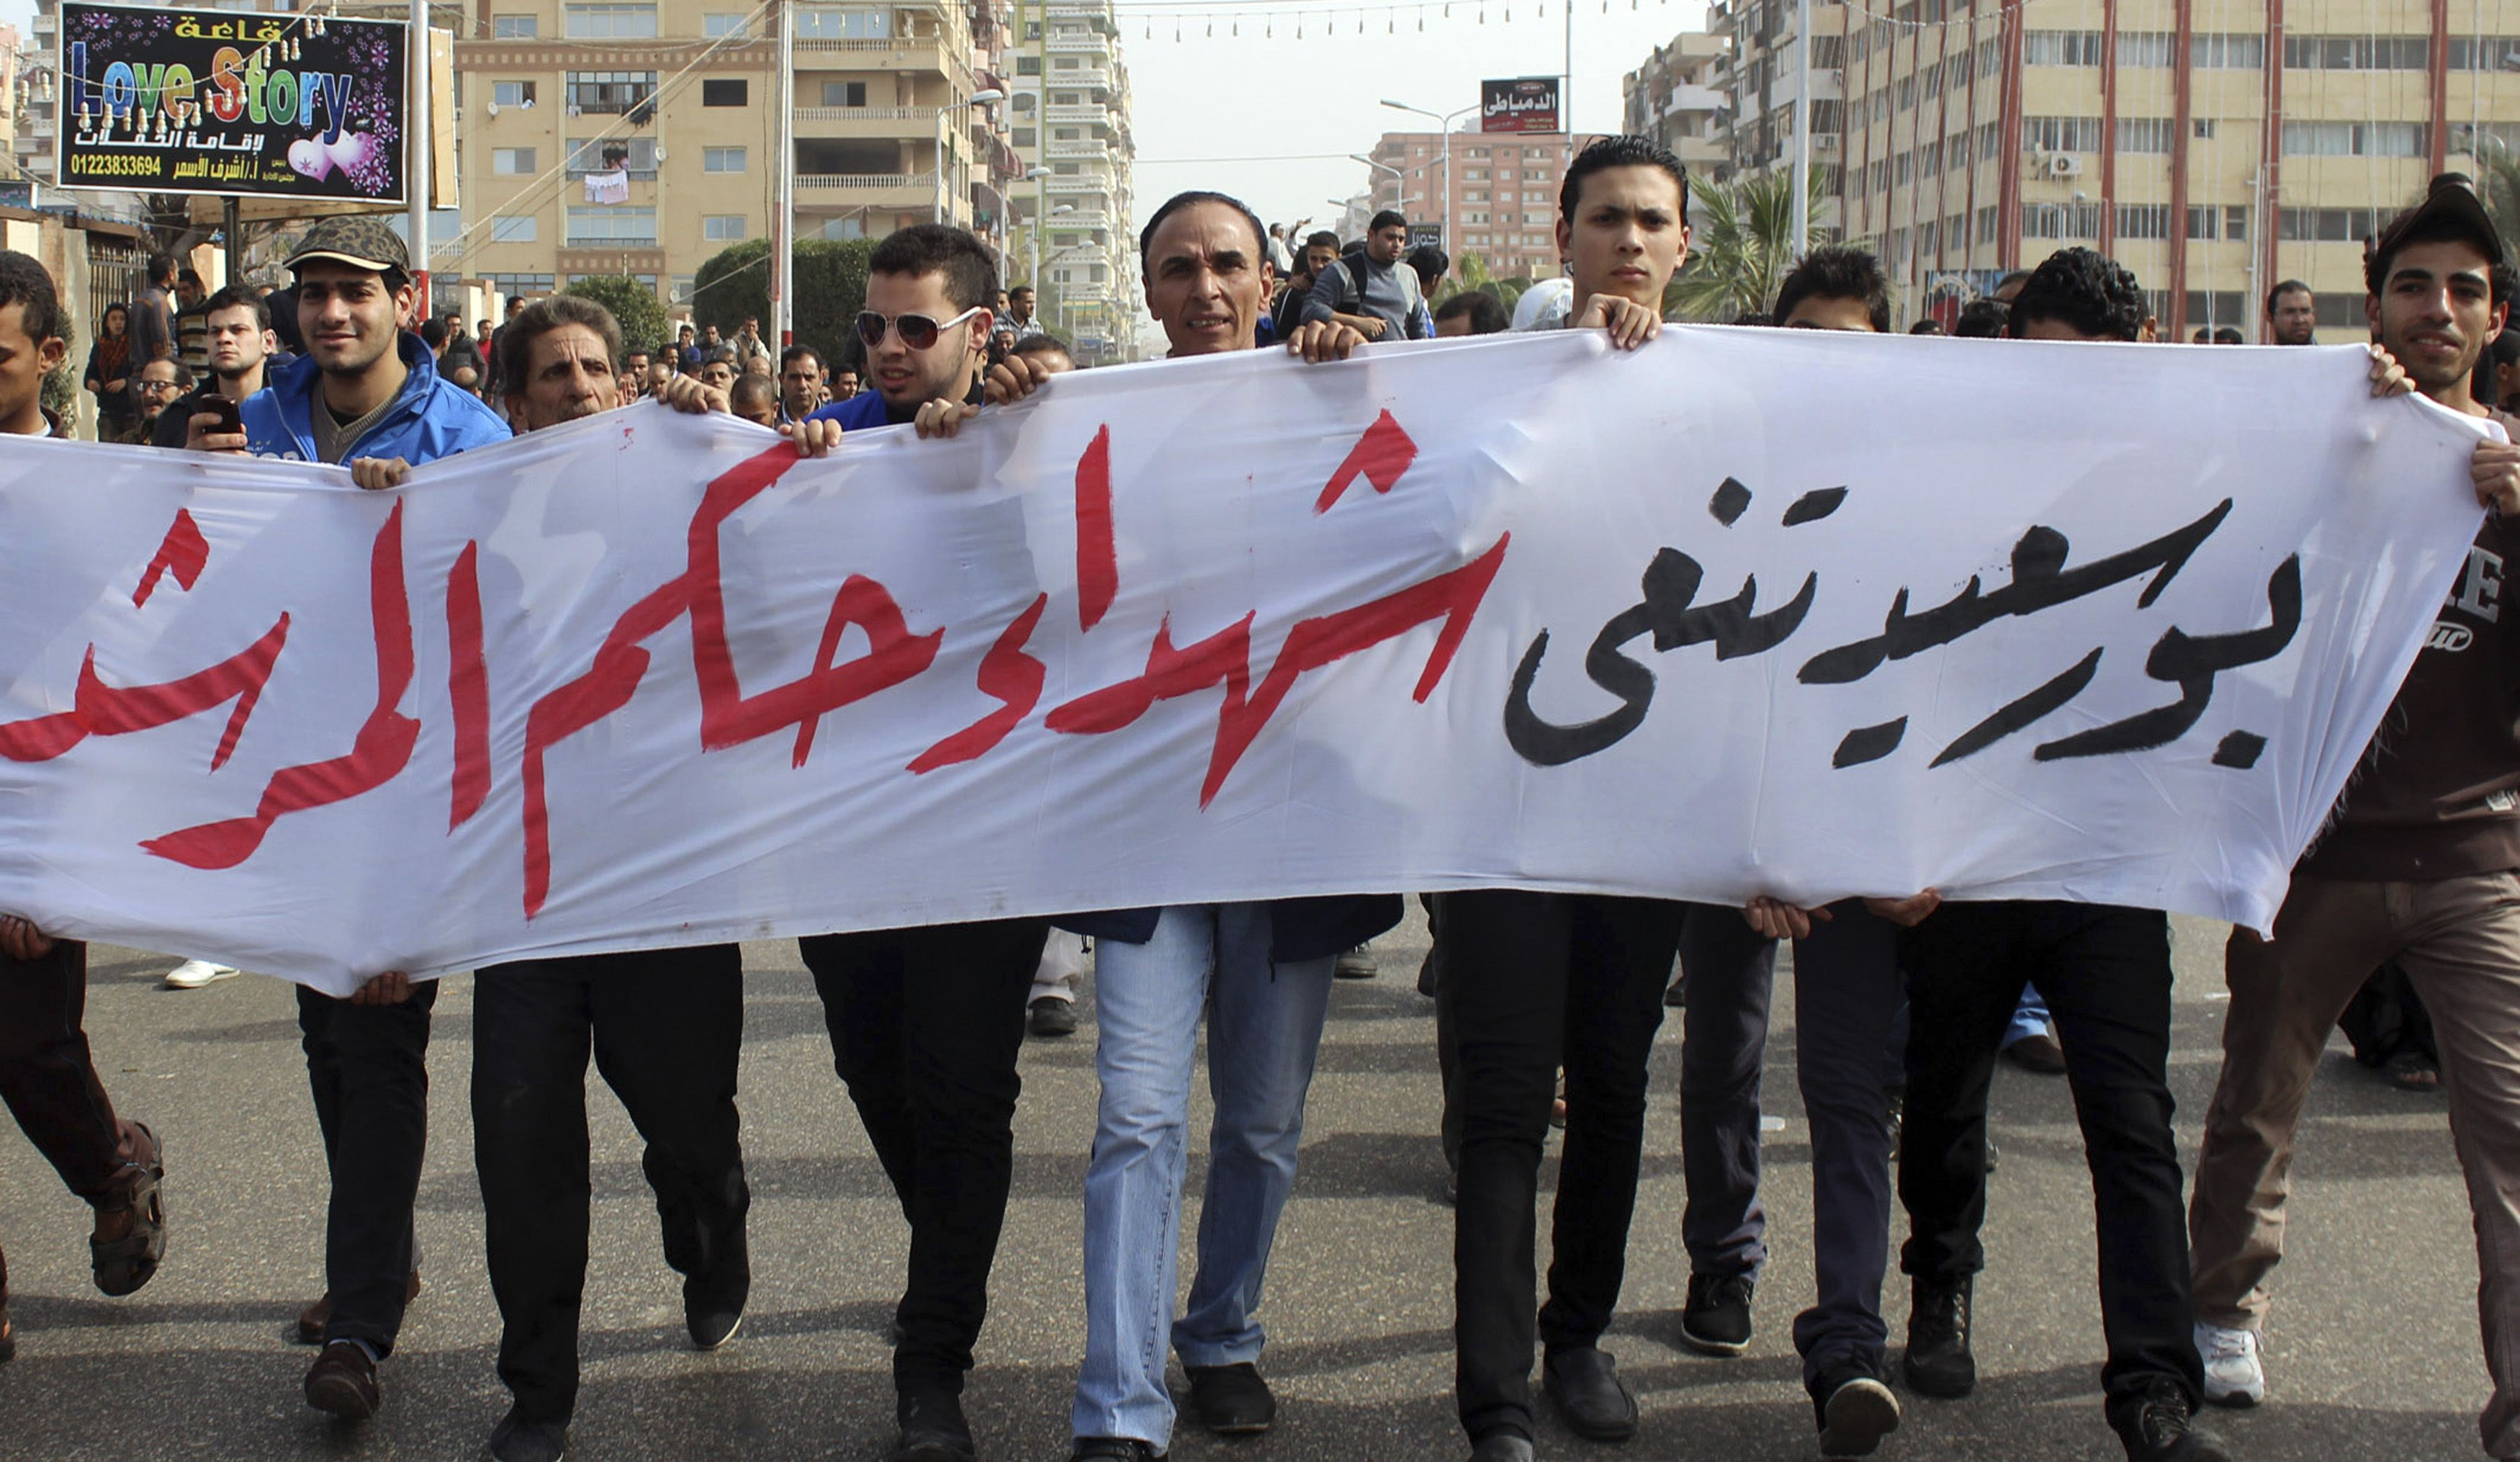 Port Said: Funerals and clashes continue in besieged city